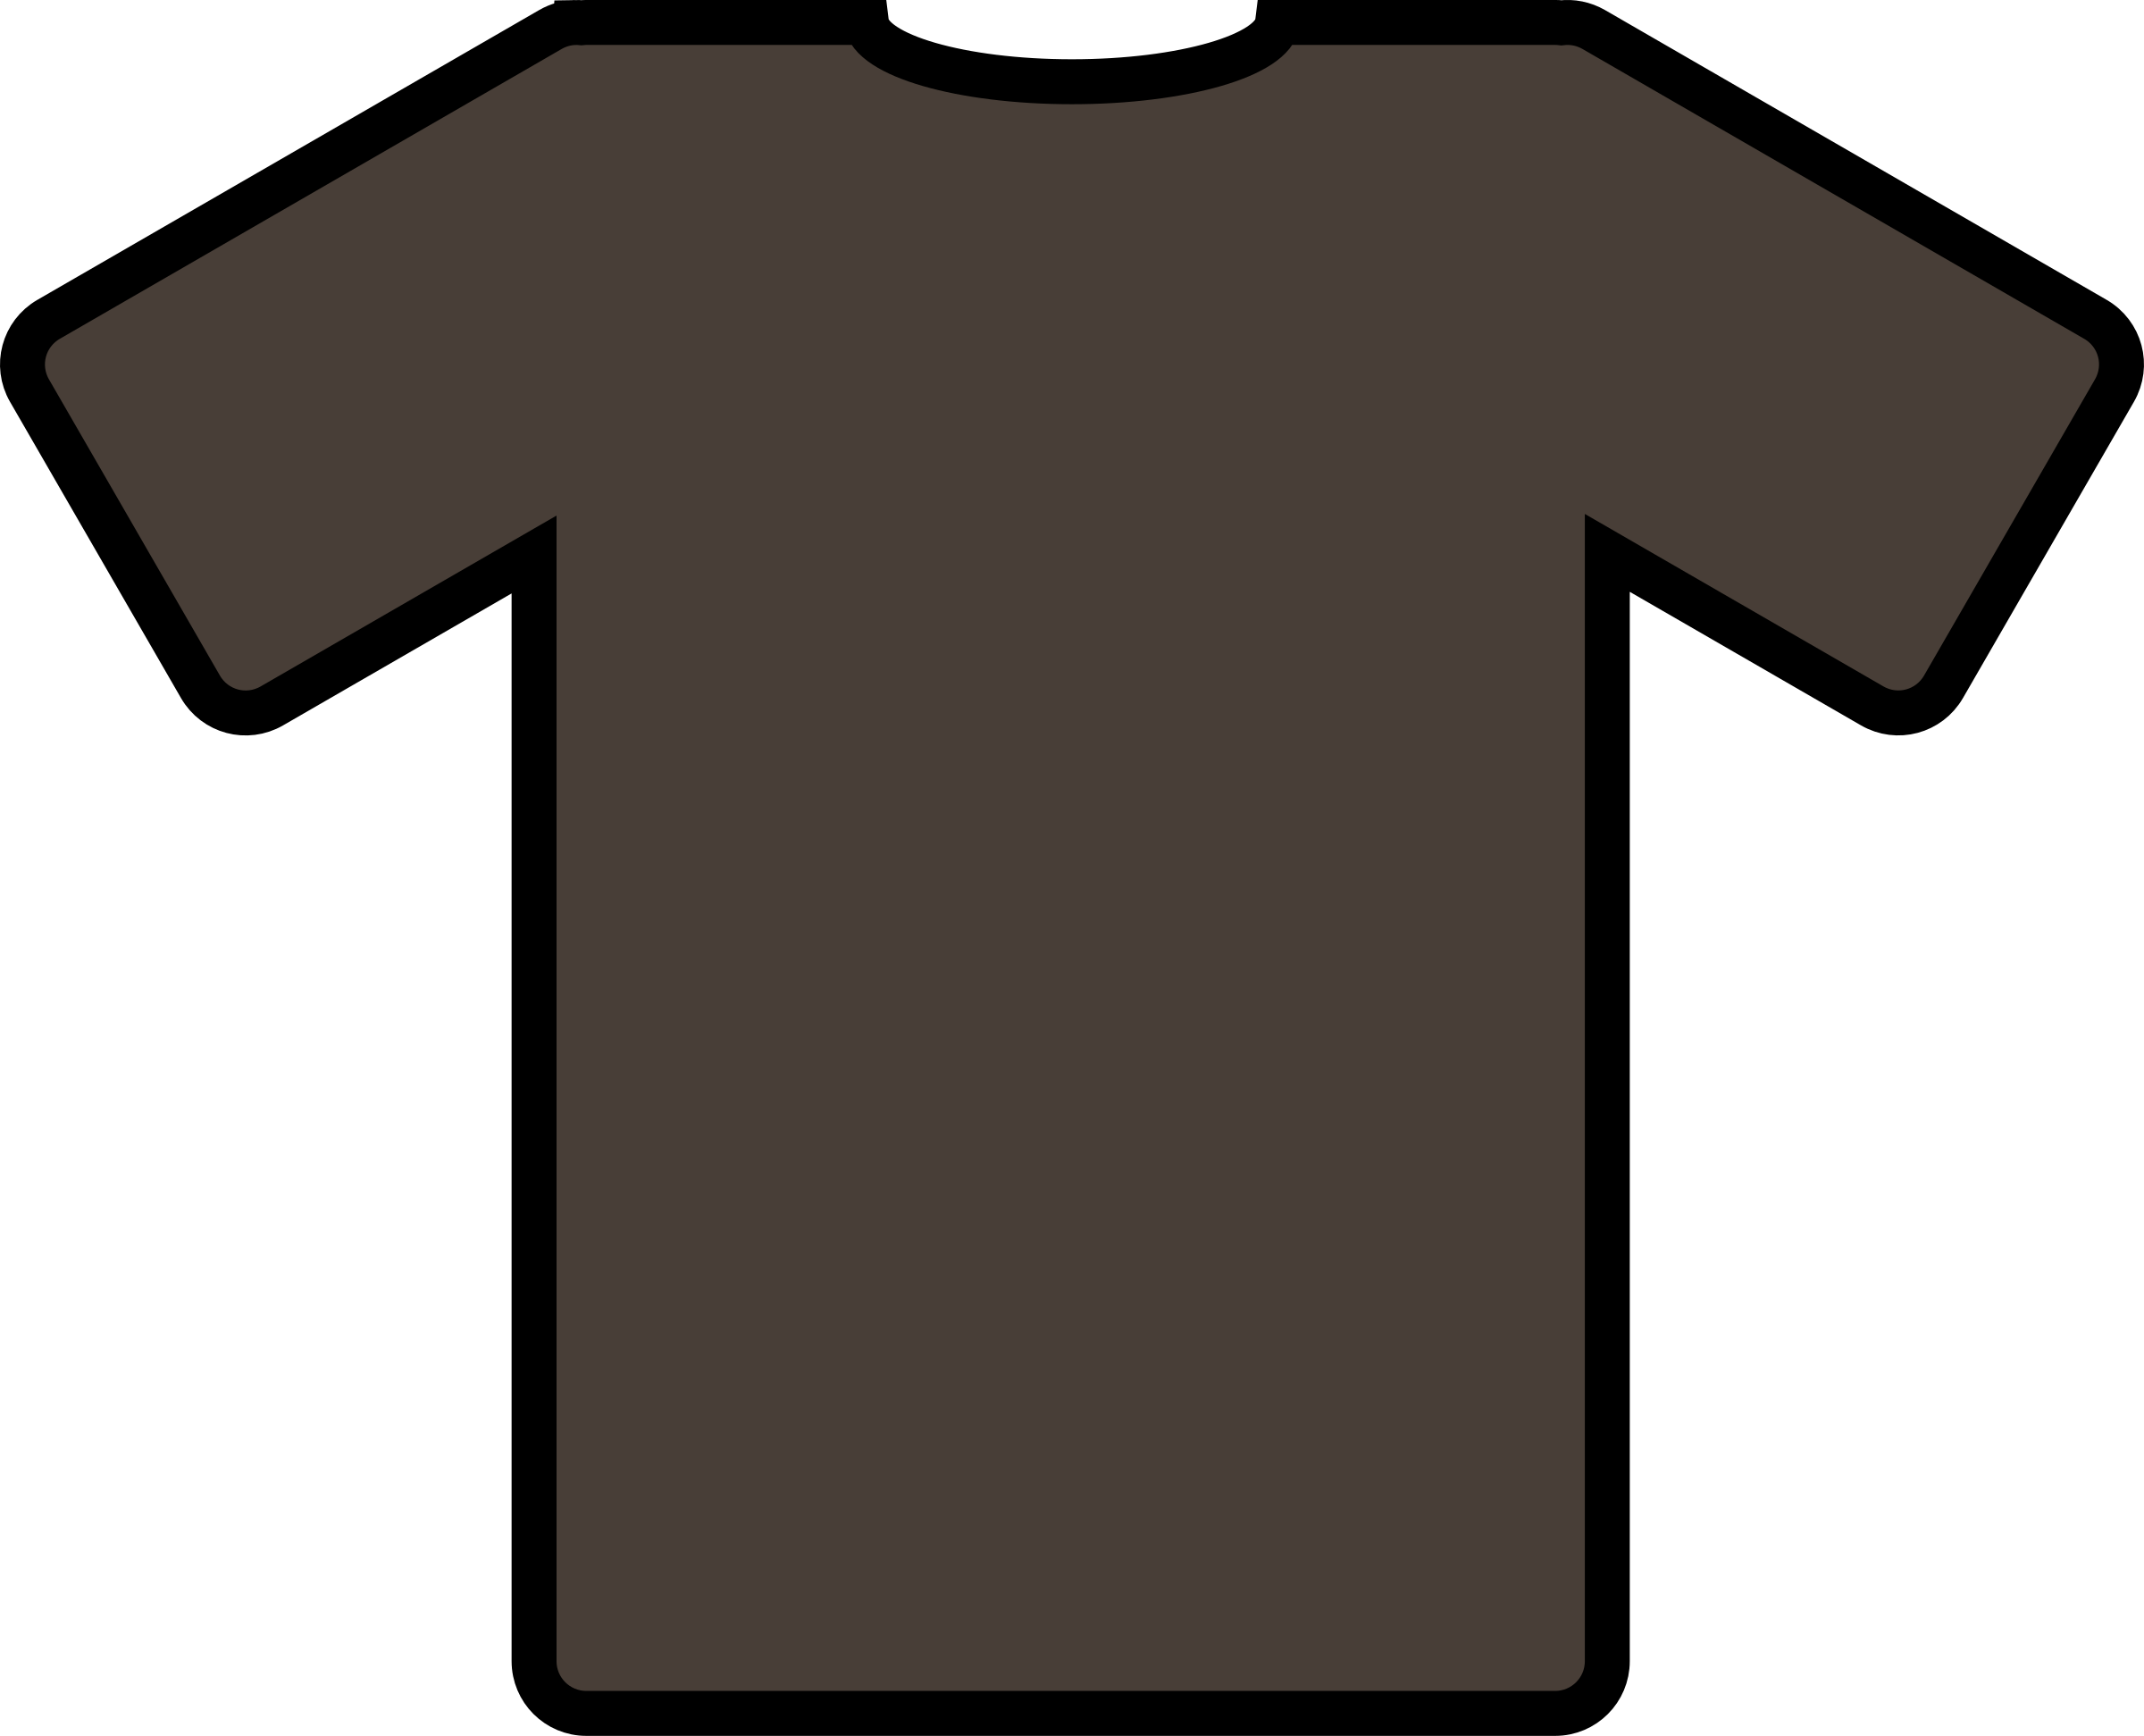 brown t-shirt by ryanlerch